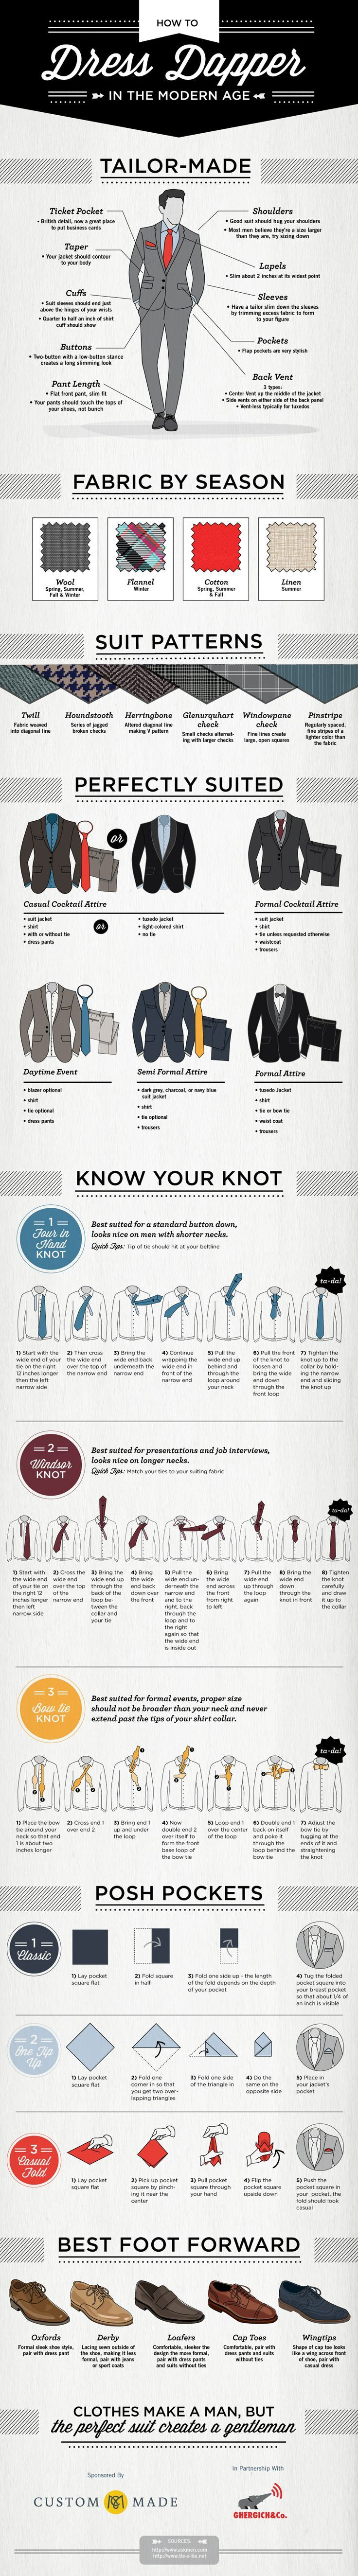 How to Look #Dapper in the Modern Age. #MensFashion #Menswear #Suits